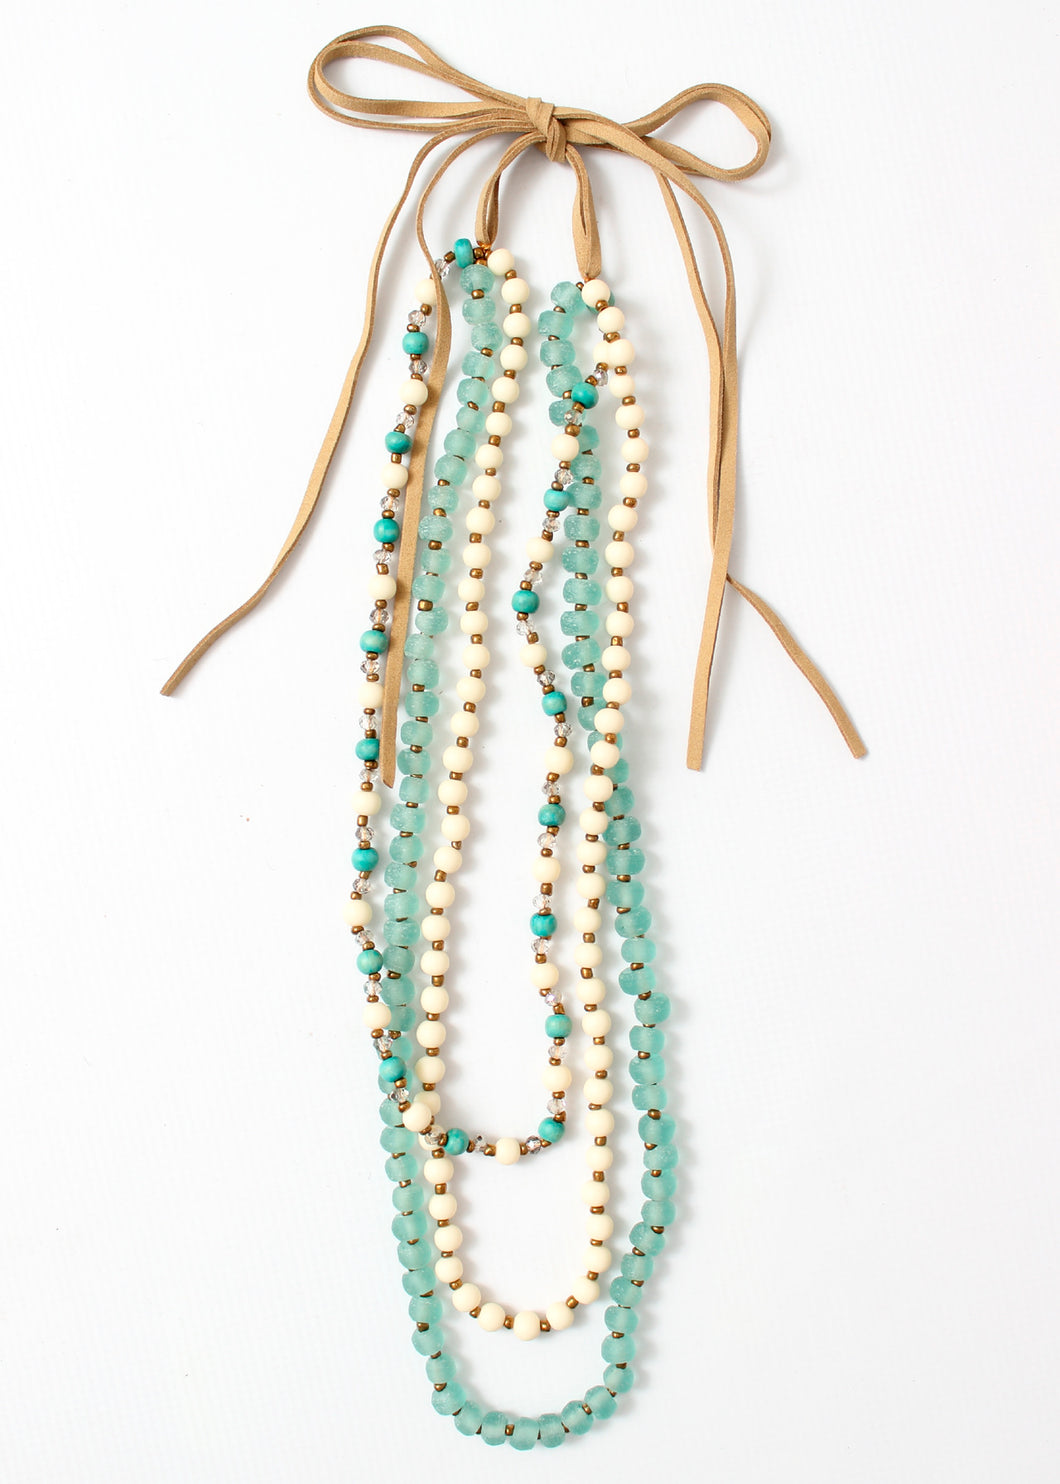 3 strand long bead necklace